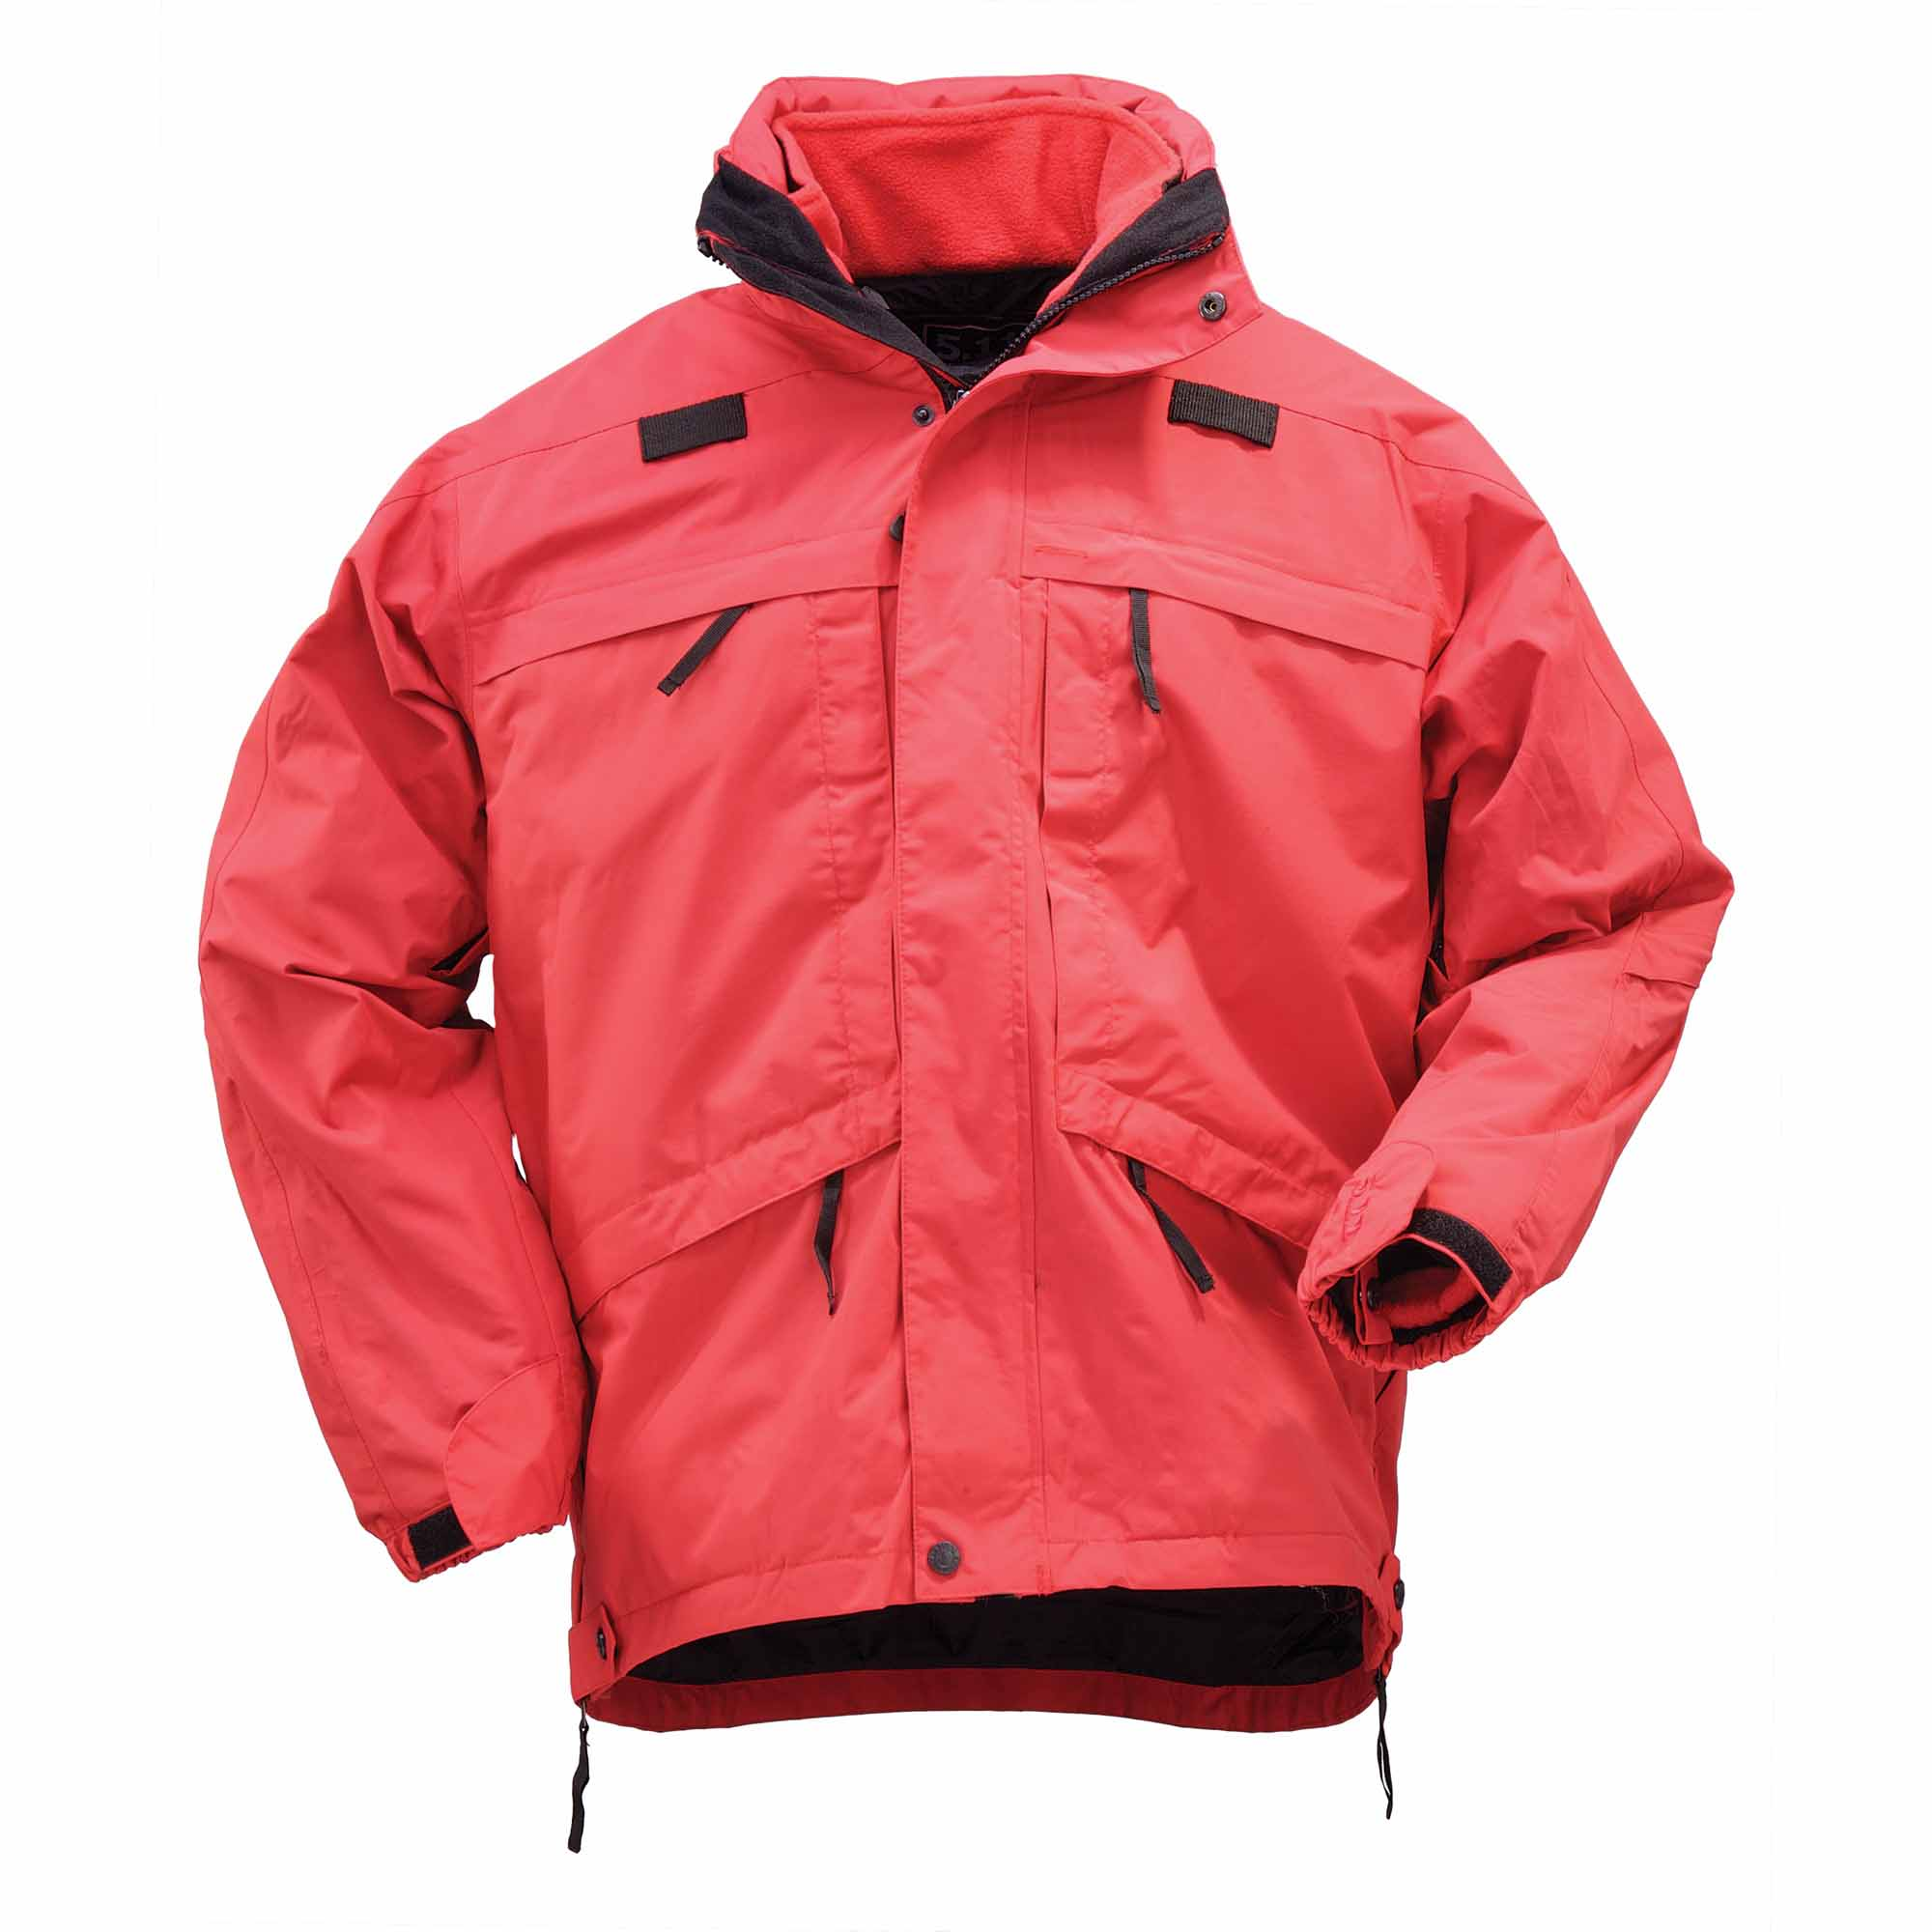 5.11 Tactical Men's 3-in-1 Parka Jacket™ (Red) thumbnail